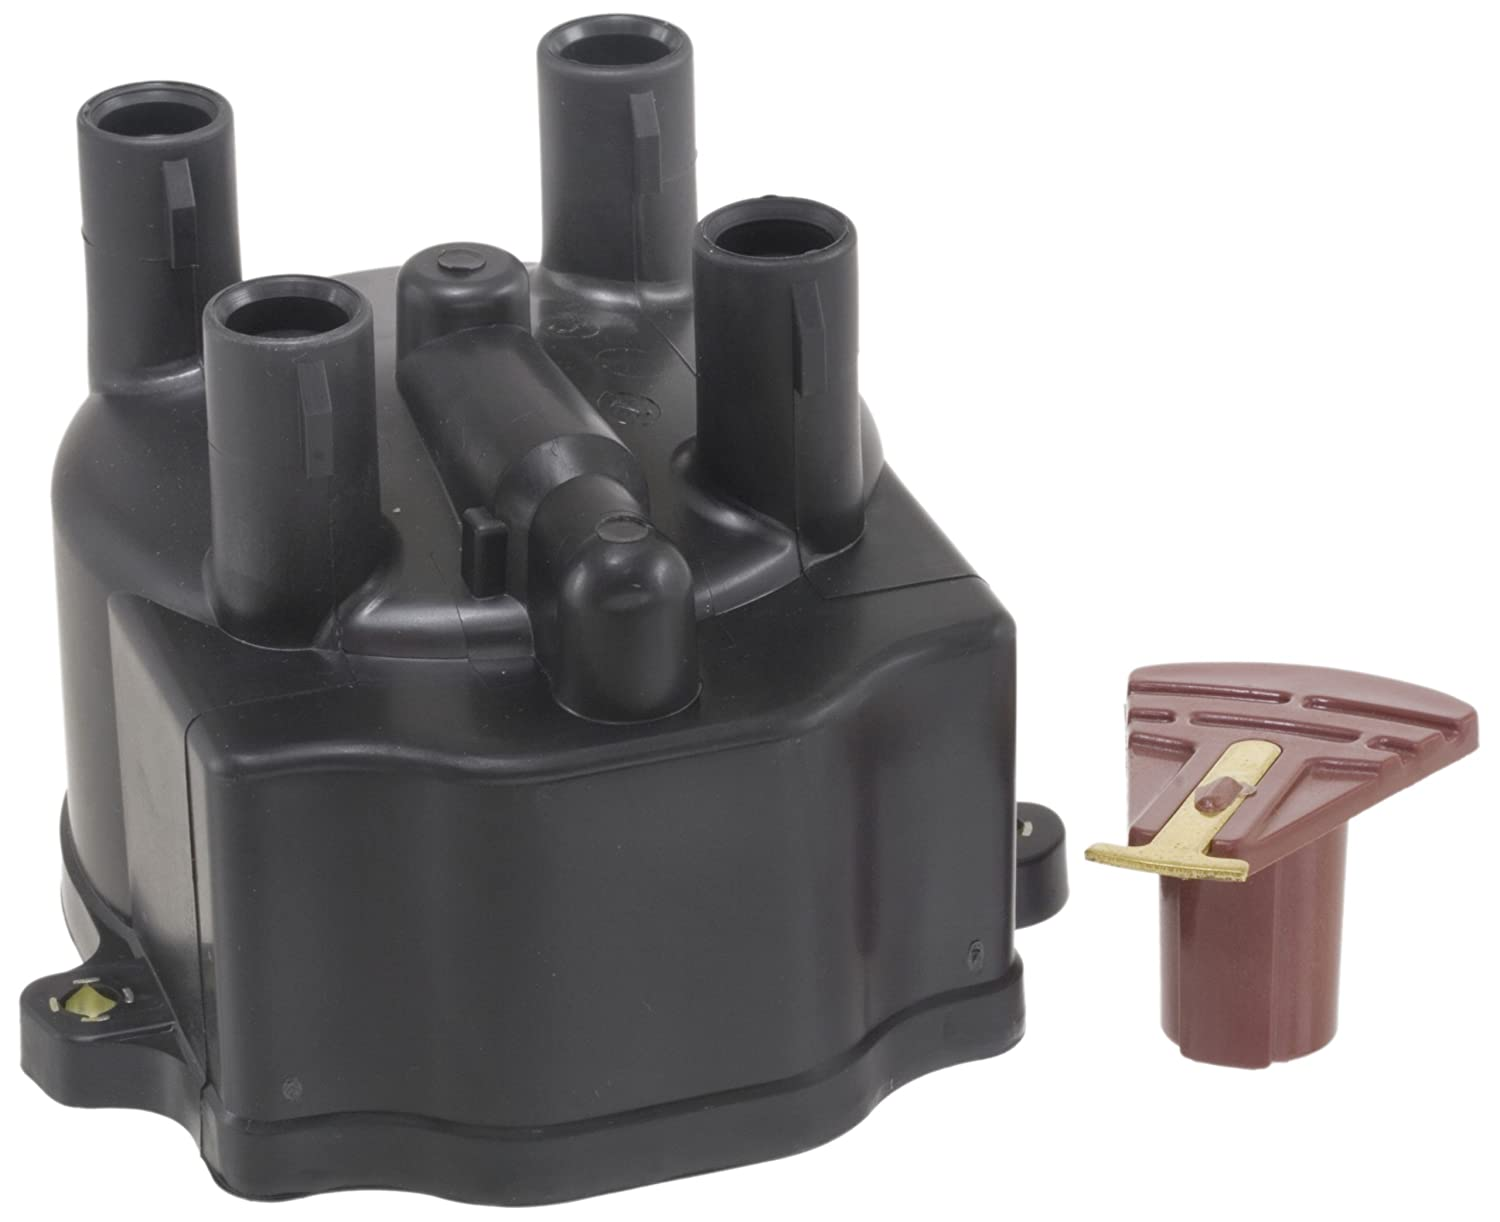 Wells 15703 Distributor Cap and Rotor Kit